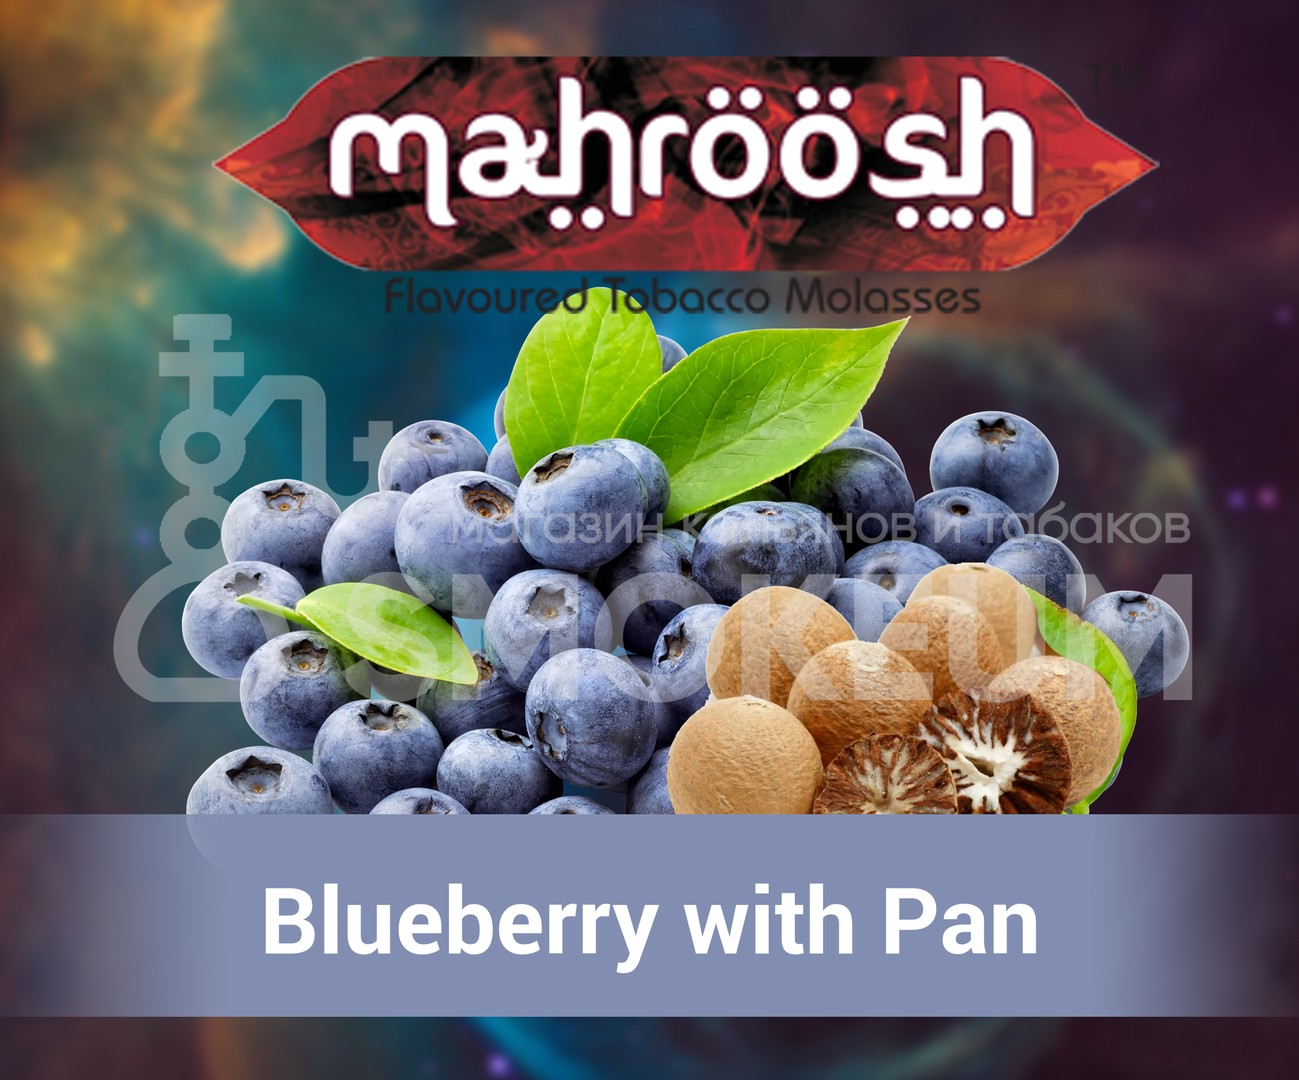 Табак Mahroosh - Blueberry with Pan (Черника с Паном) 50 гр